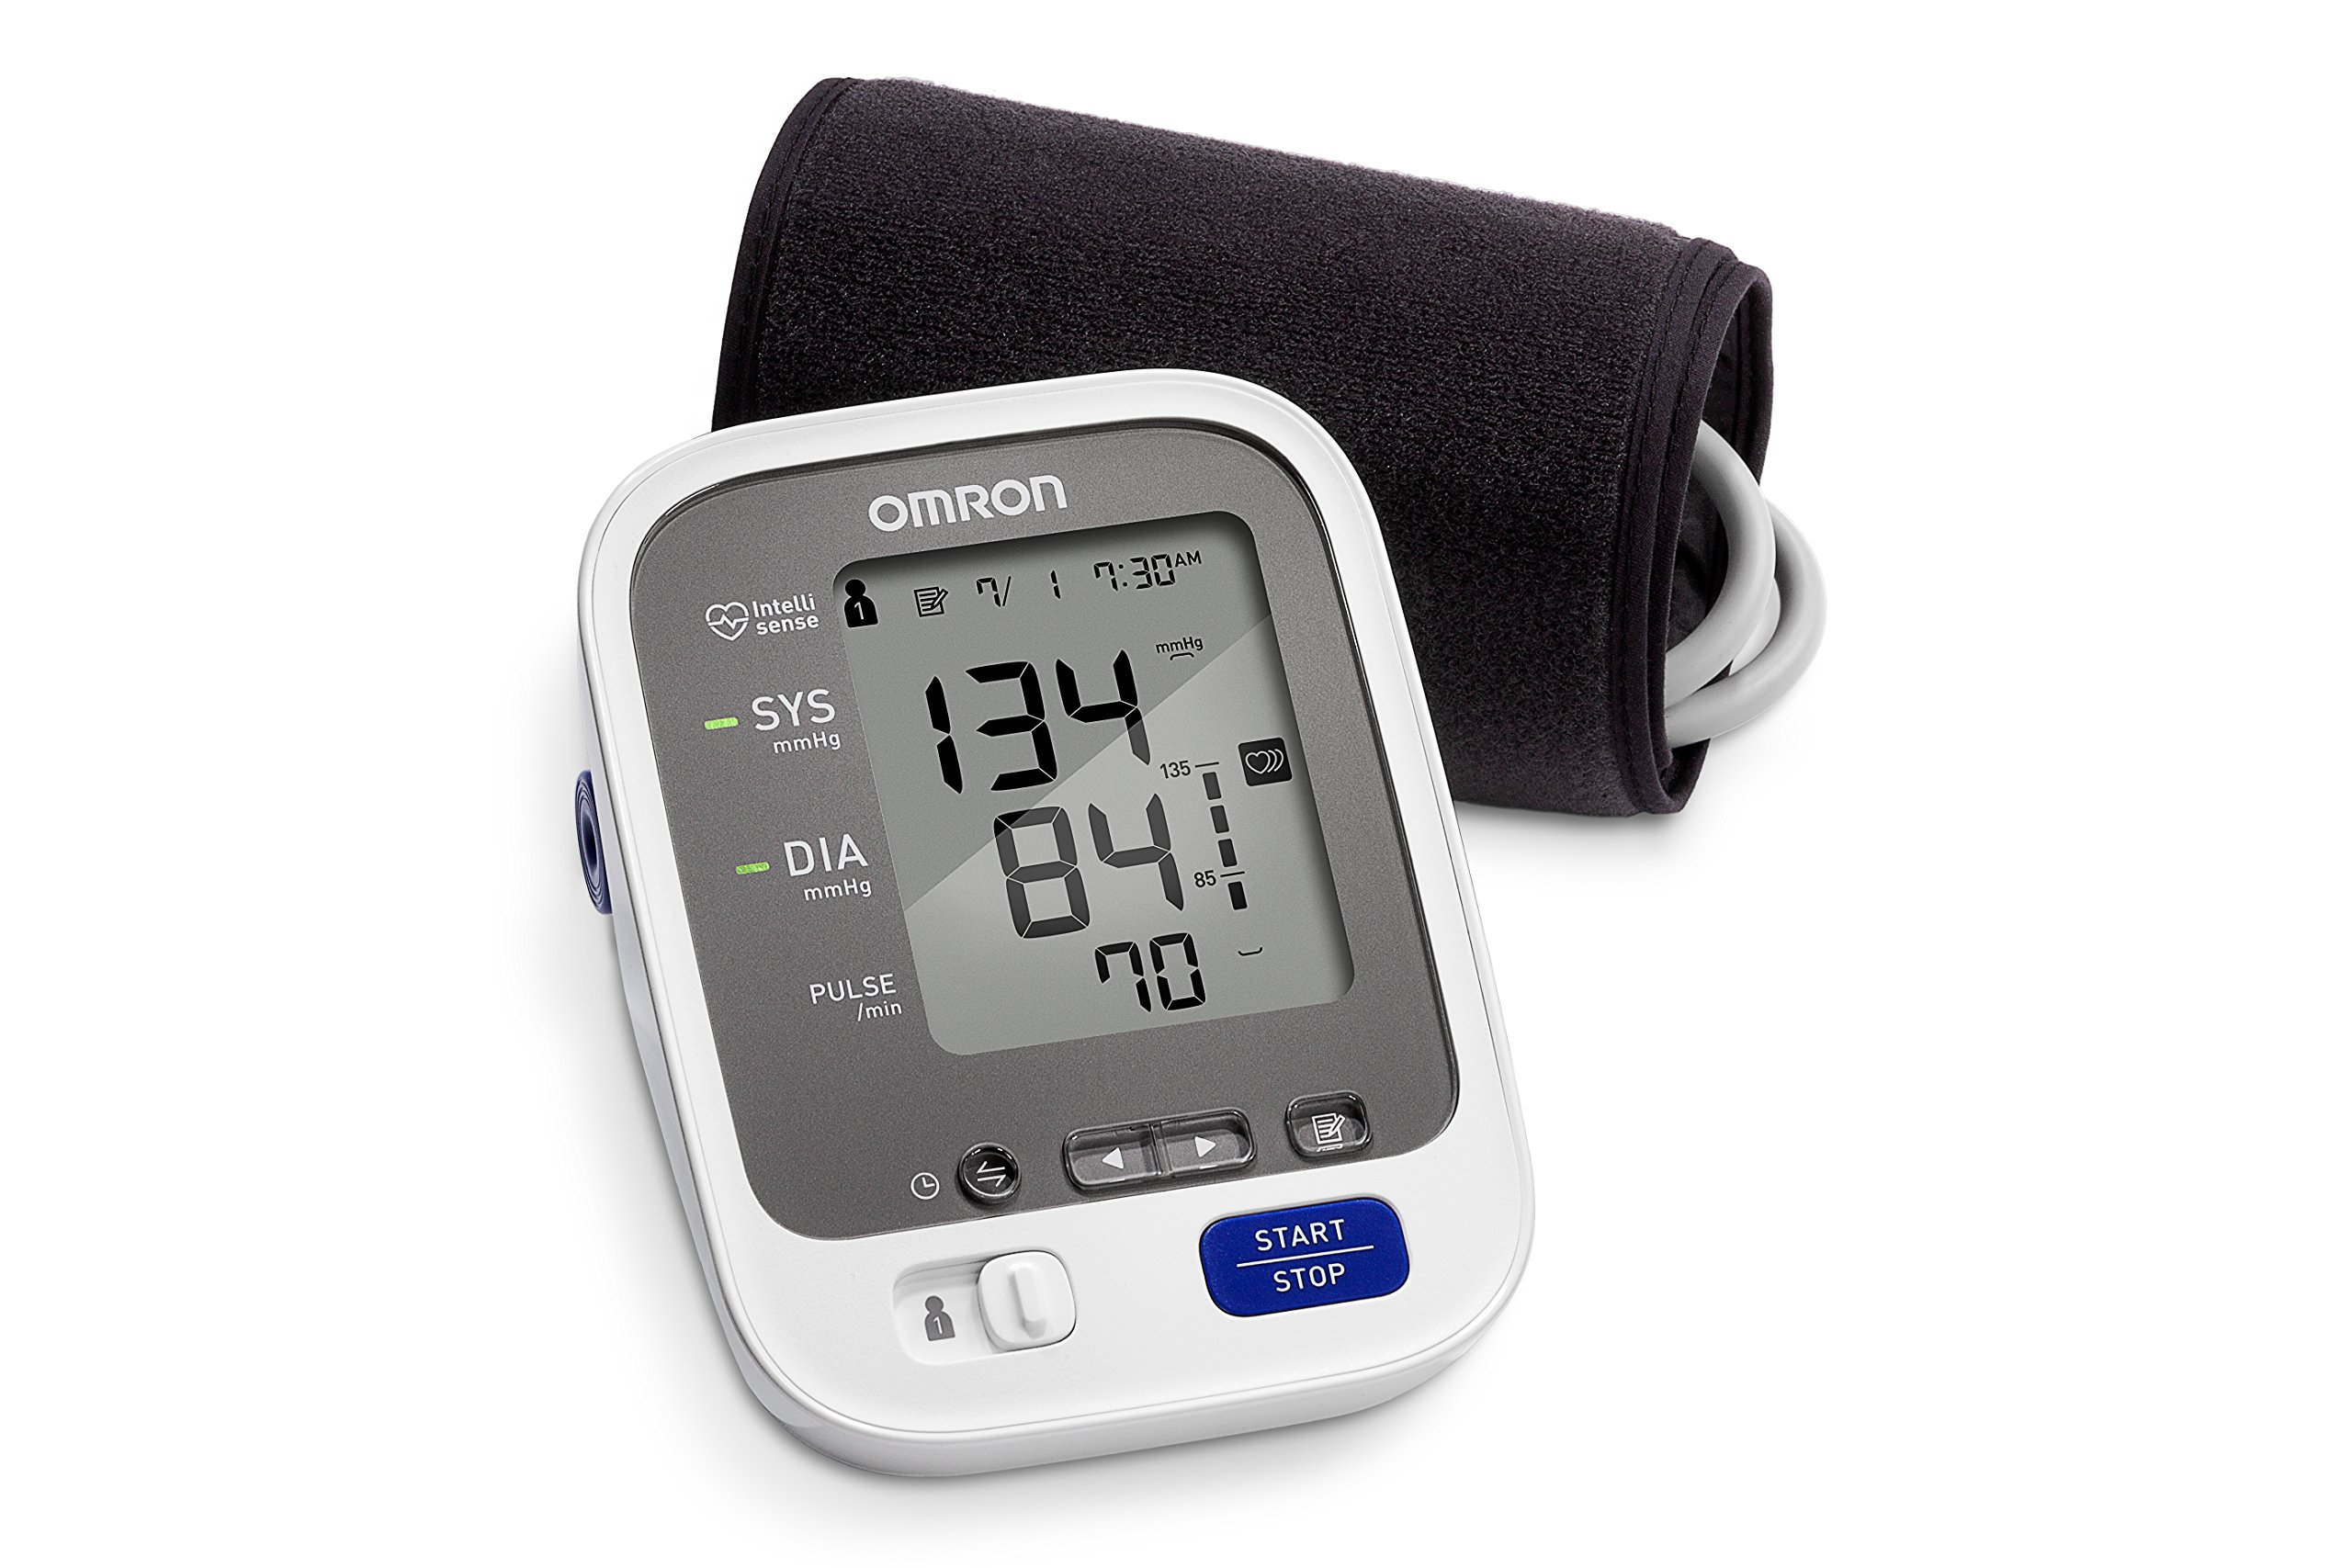 Omron 7 Series Wireless Bluetooth Upper Arm Blood Pressure Monitor with Two User Mode (120 Reading Memory)- Compatible with Alexa